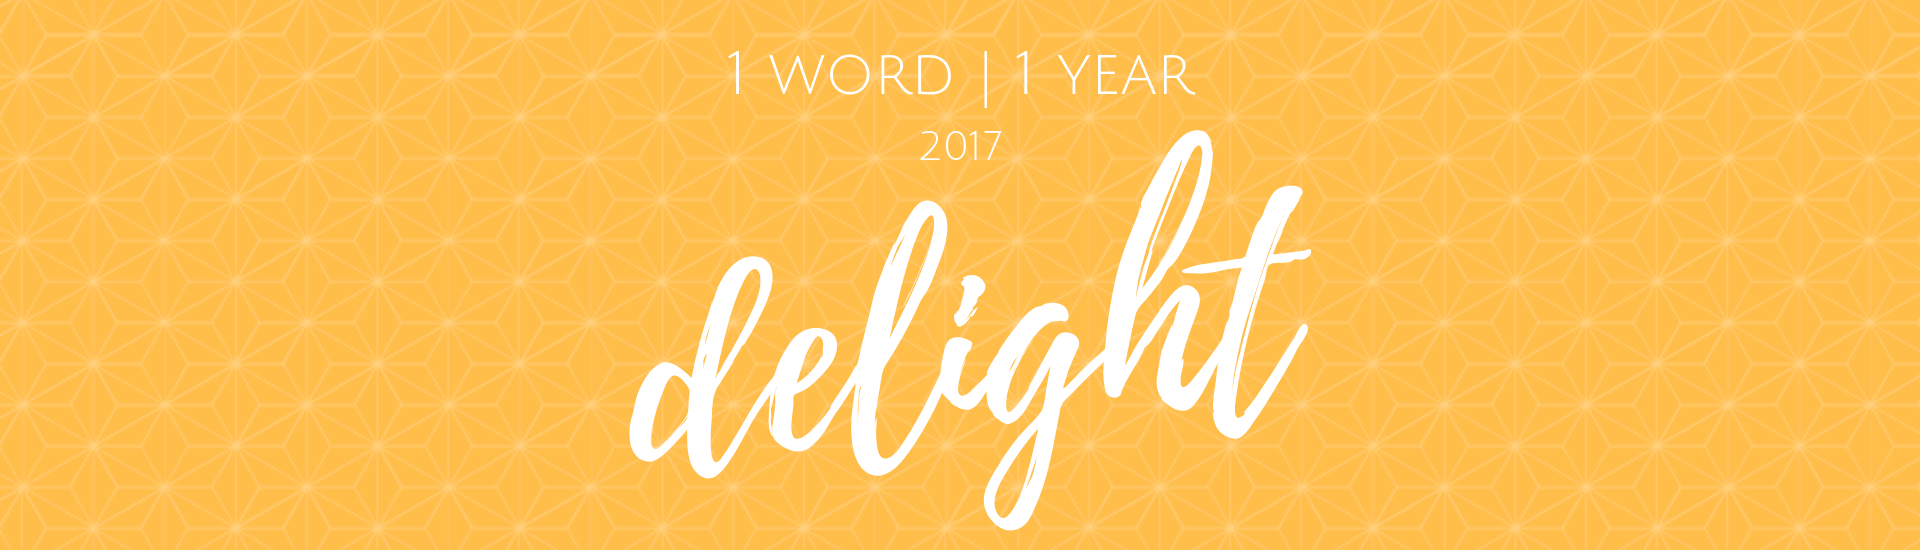 1 Word for 1 Year 2017